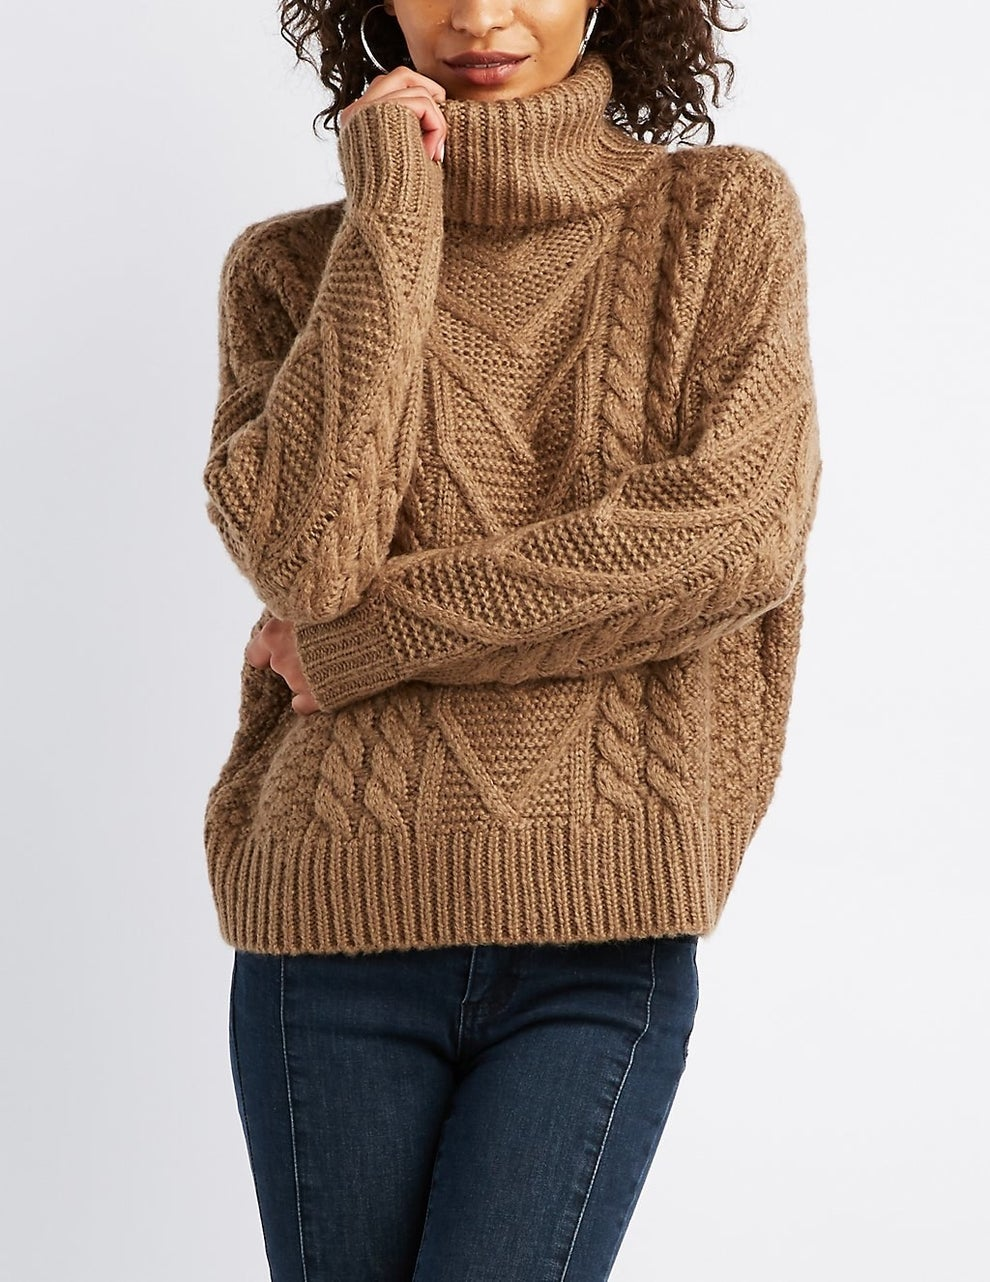 41 Cozy Sweaters Youll Basically Want To Live In